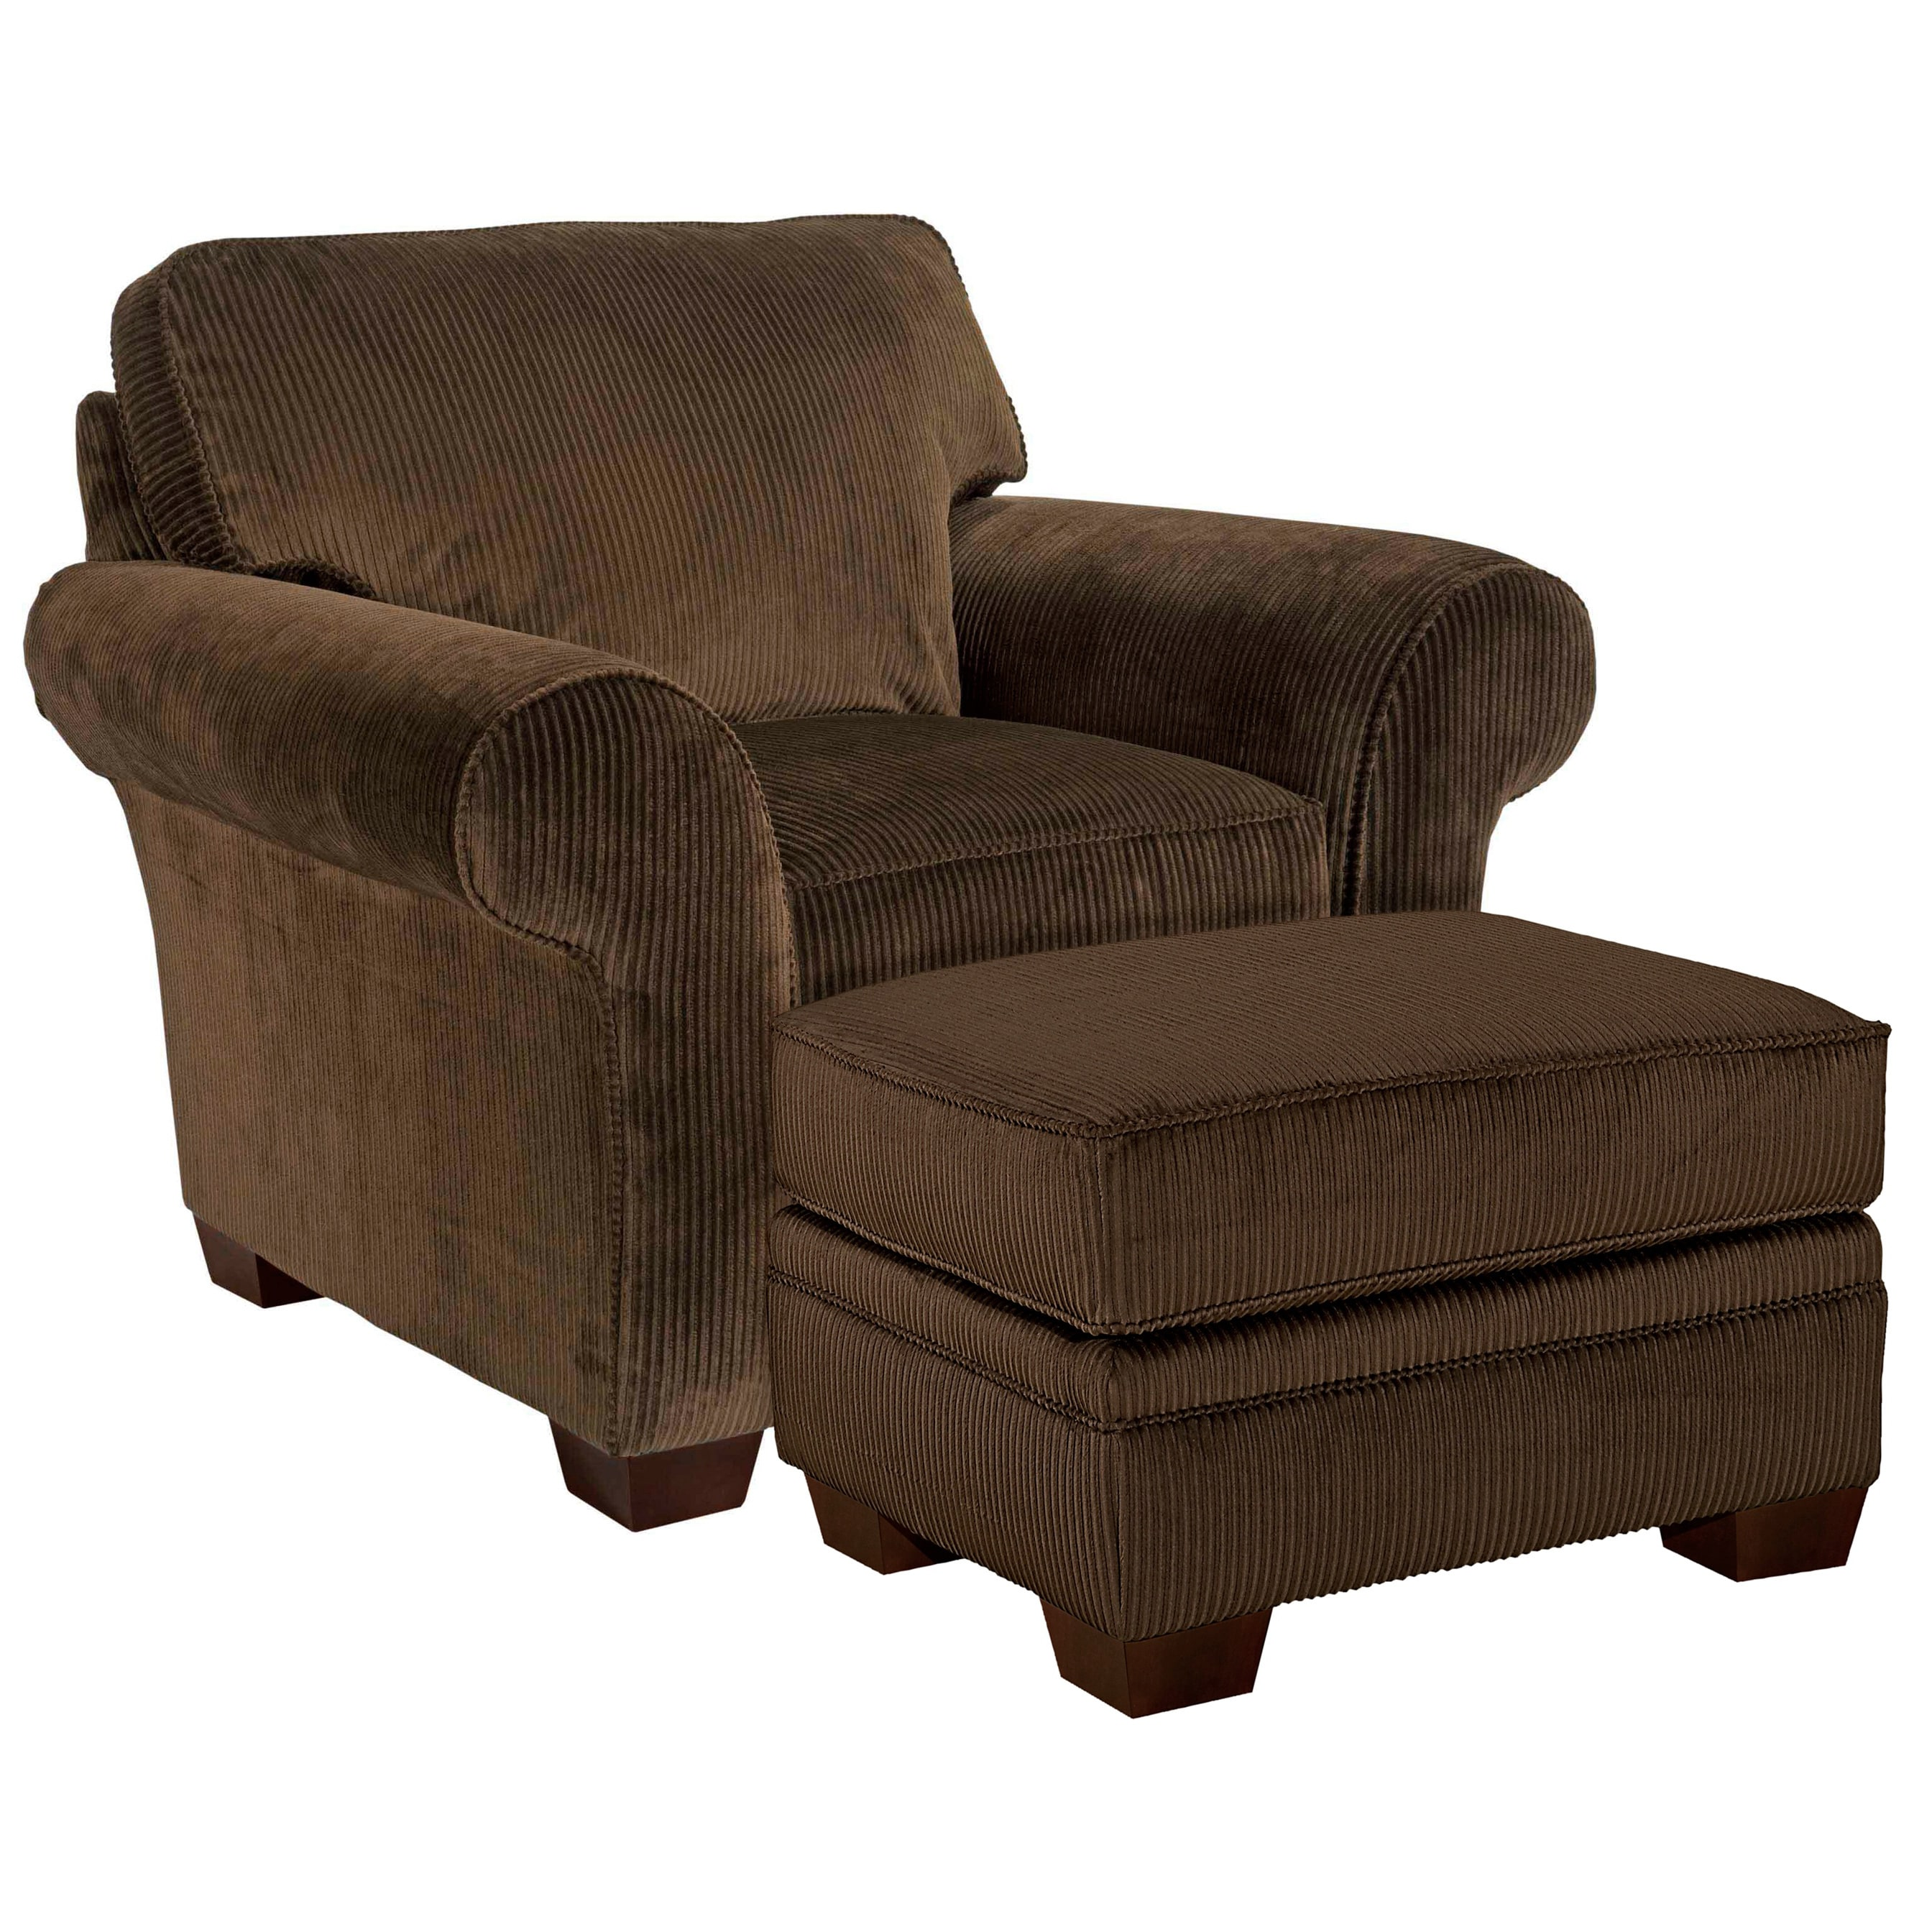 Broyhill Zoey Dark Chocolate Corduroy Chair Ottoman Set Free